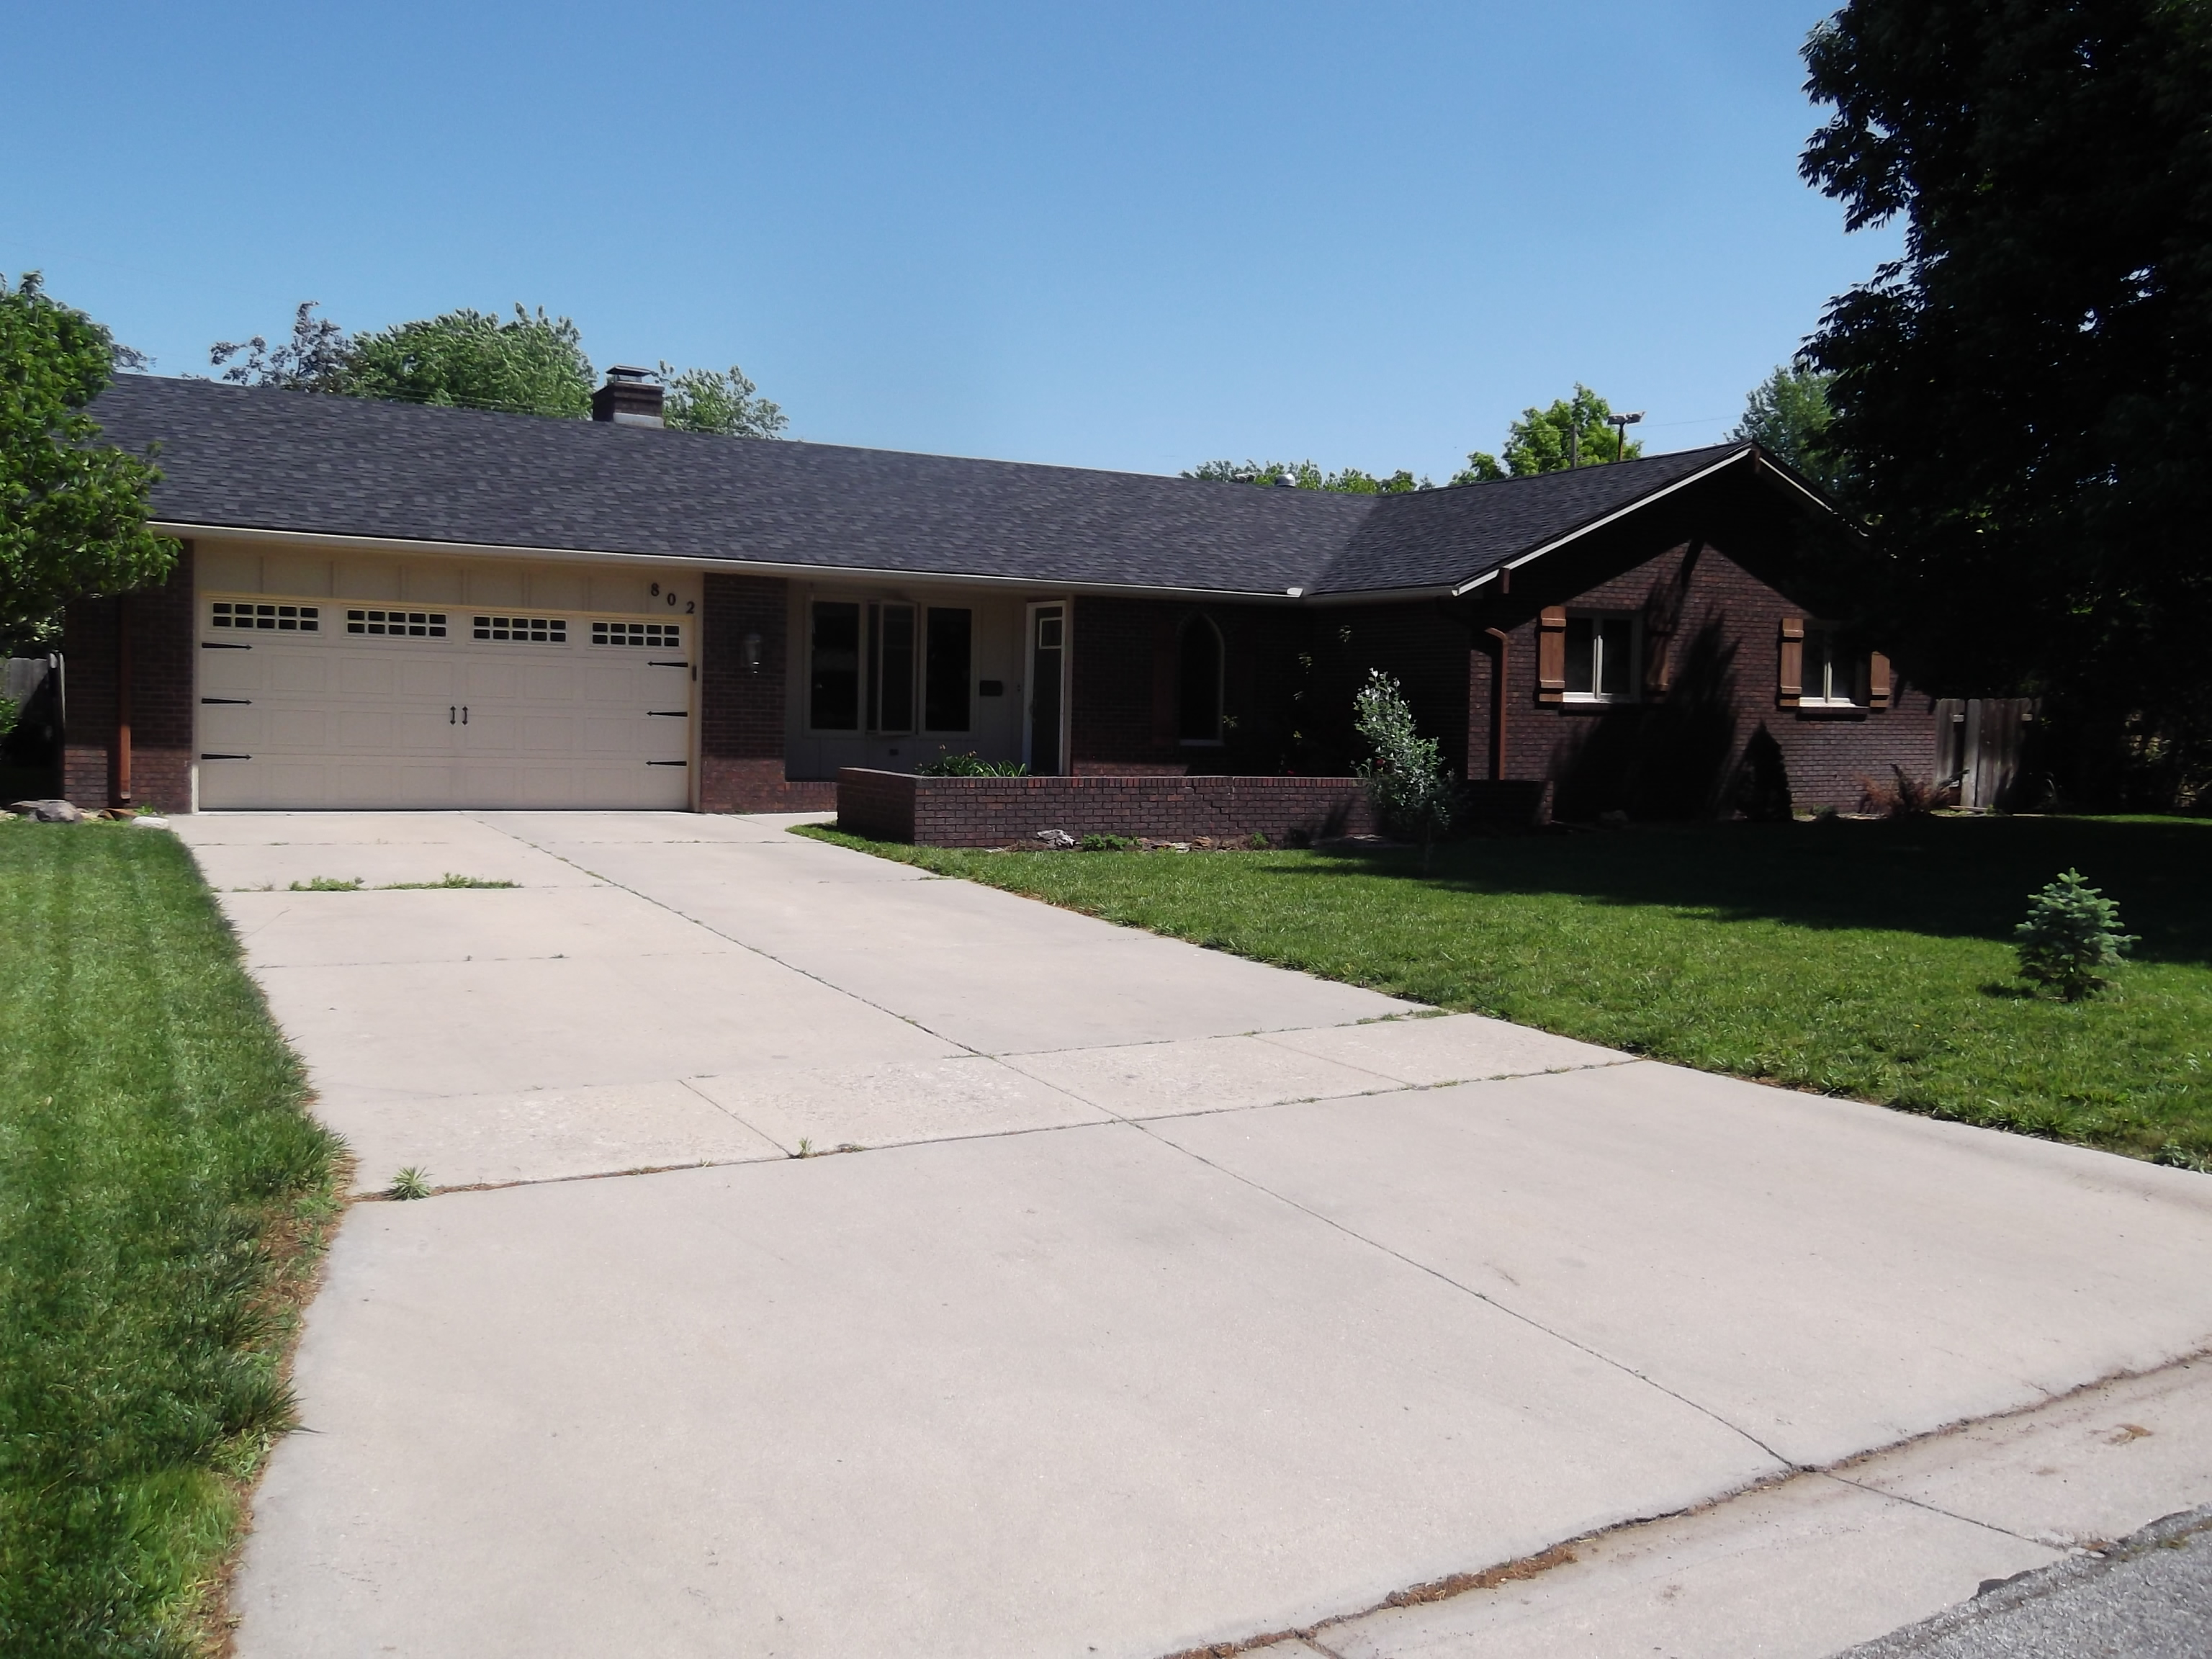 802 Lochinvar Ln, Hutchinson, Kansas 67502